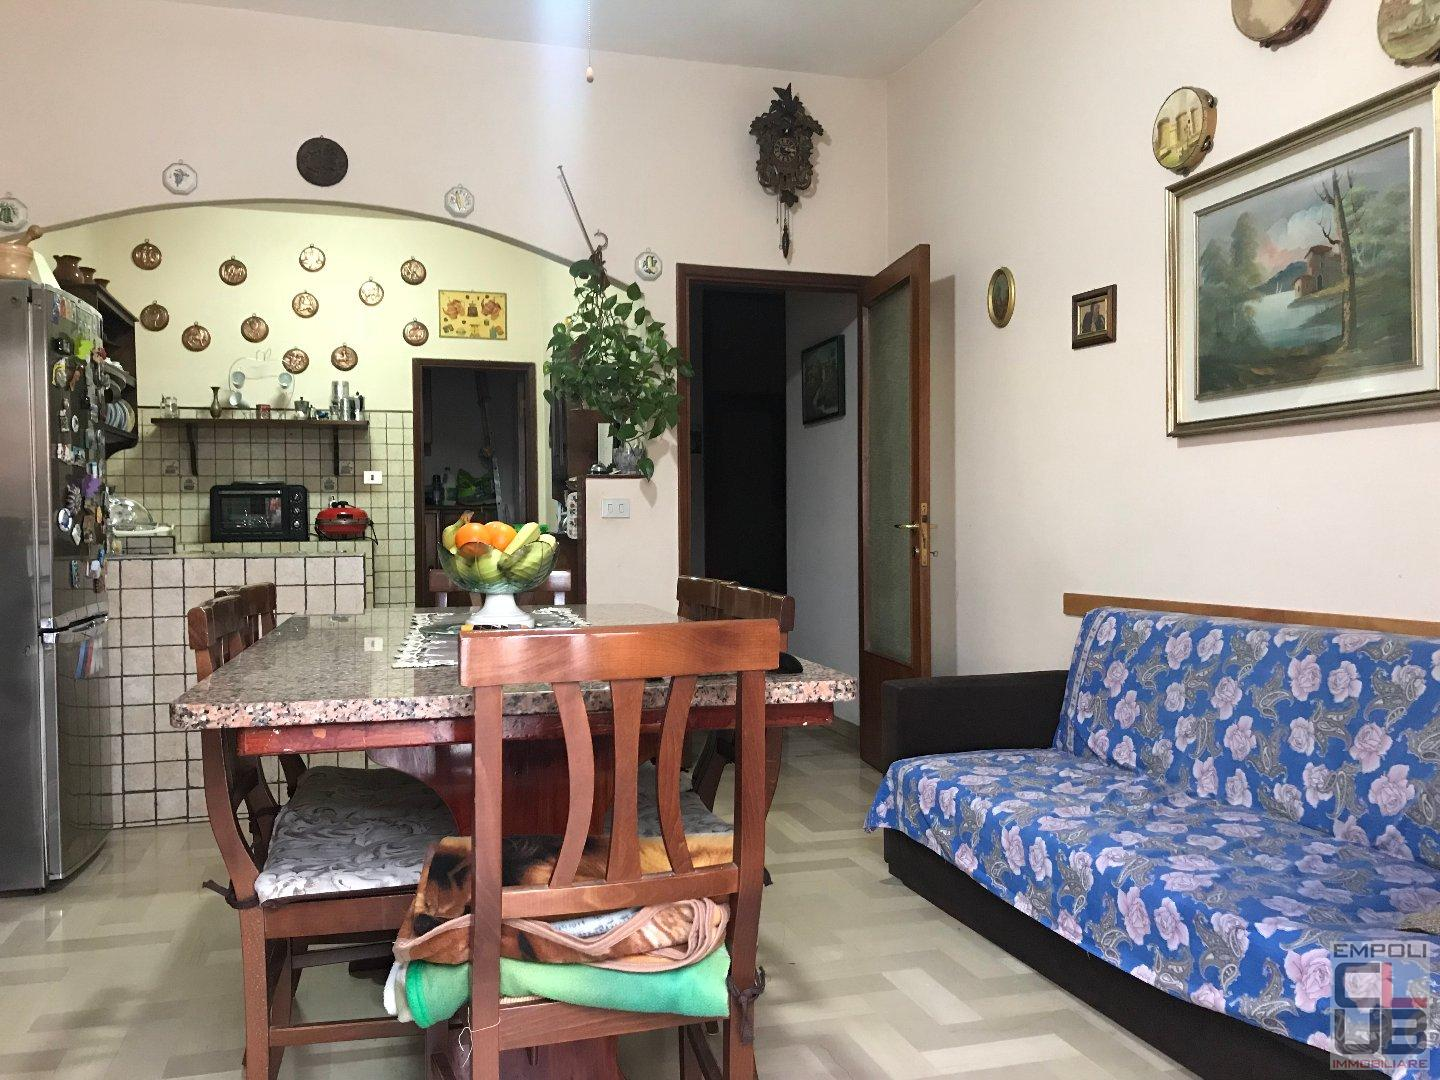 Semi-detached house for sale in Empoli (FI)